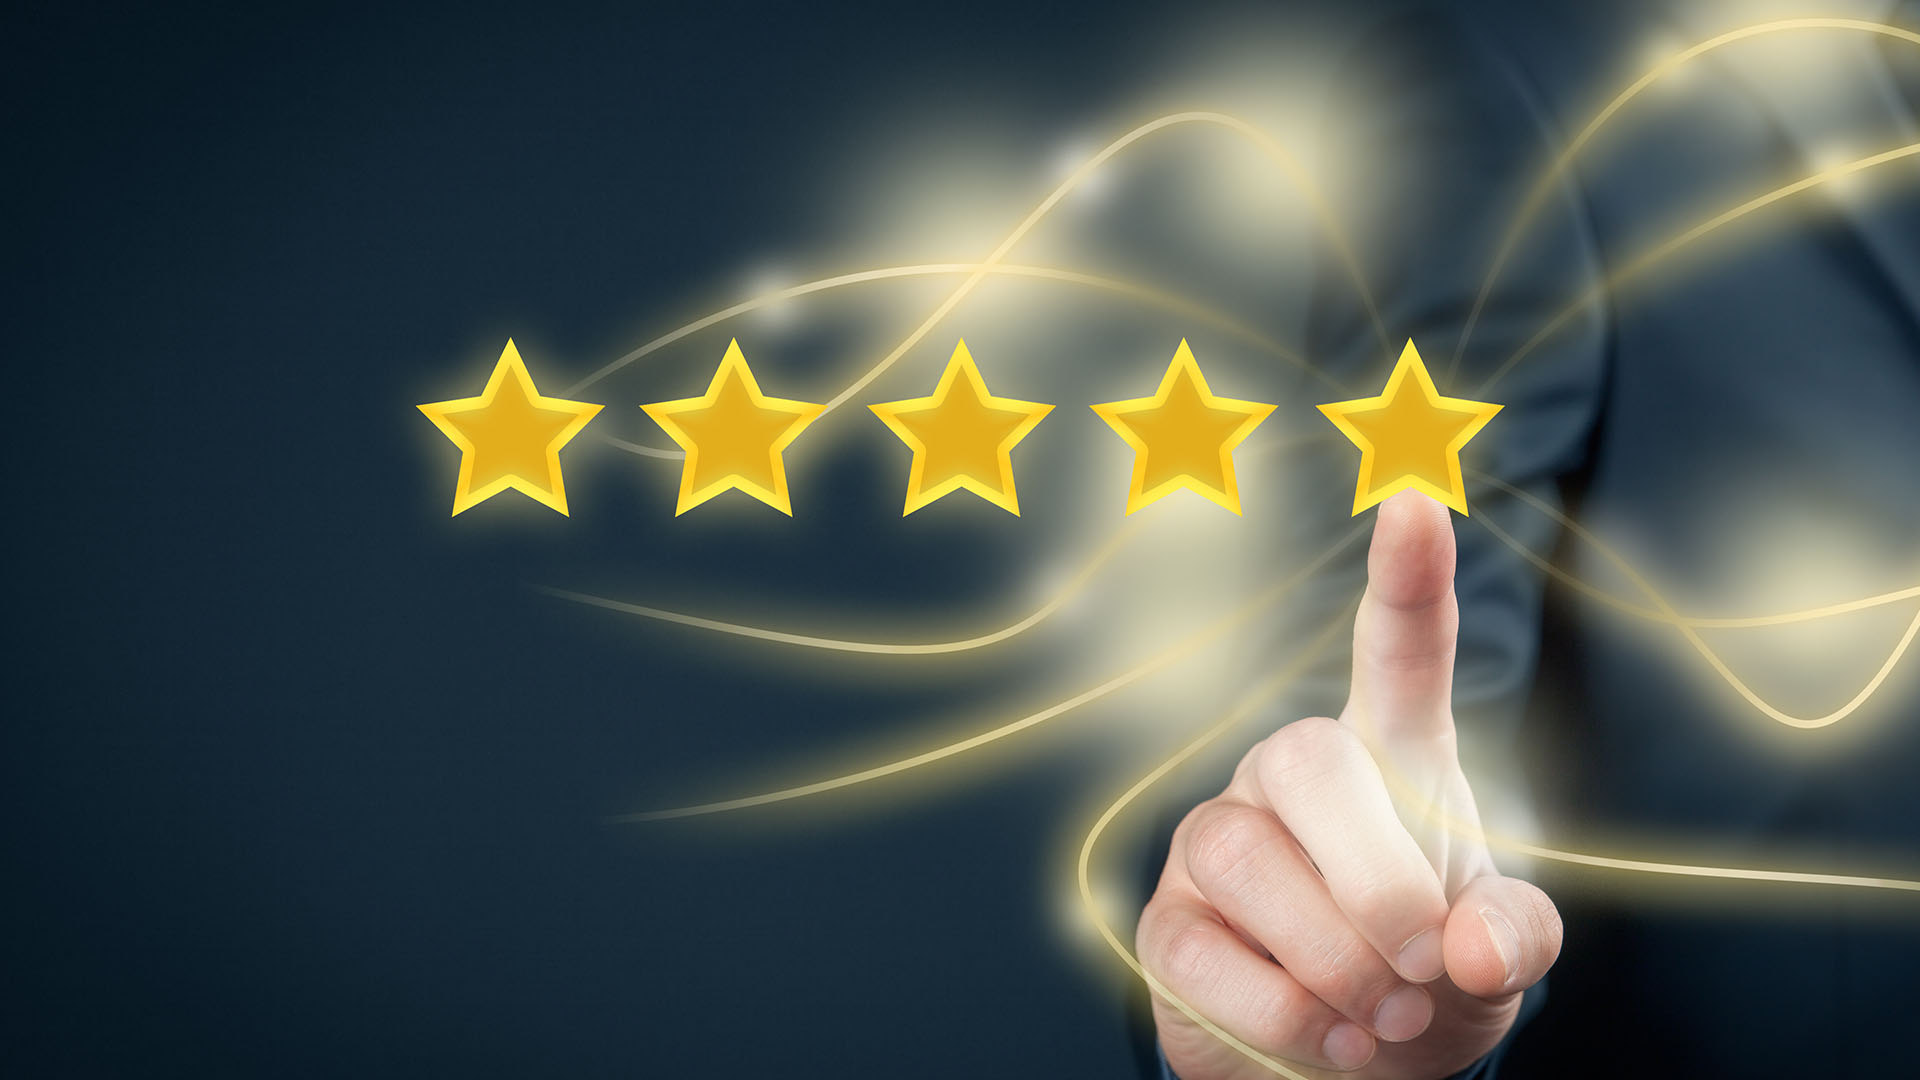 Do real estate ratings offer any benefit to home buyers?